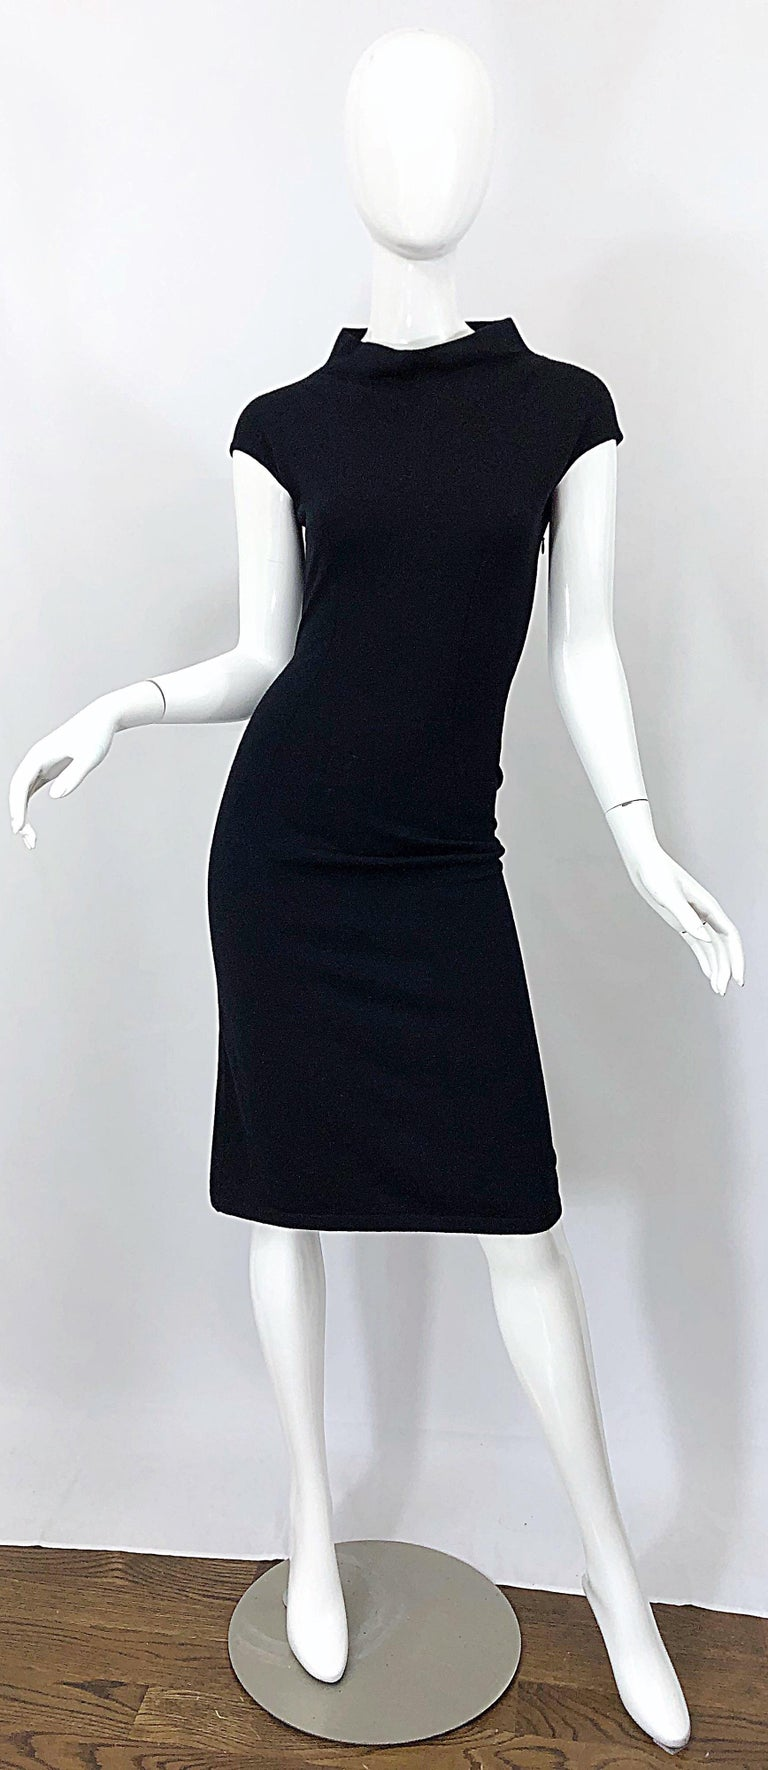 Vintage Azzedine Alaia 1980s Black Lightweight Wool Cap Sleeve Bodycon 80s Dress For Sale 12